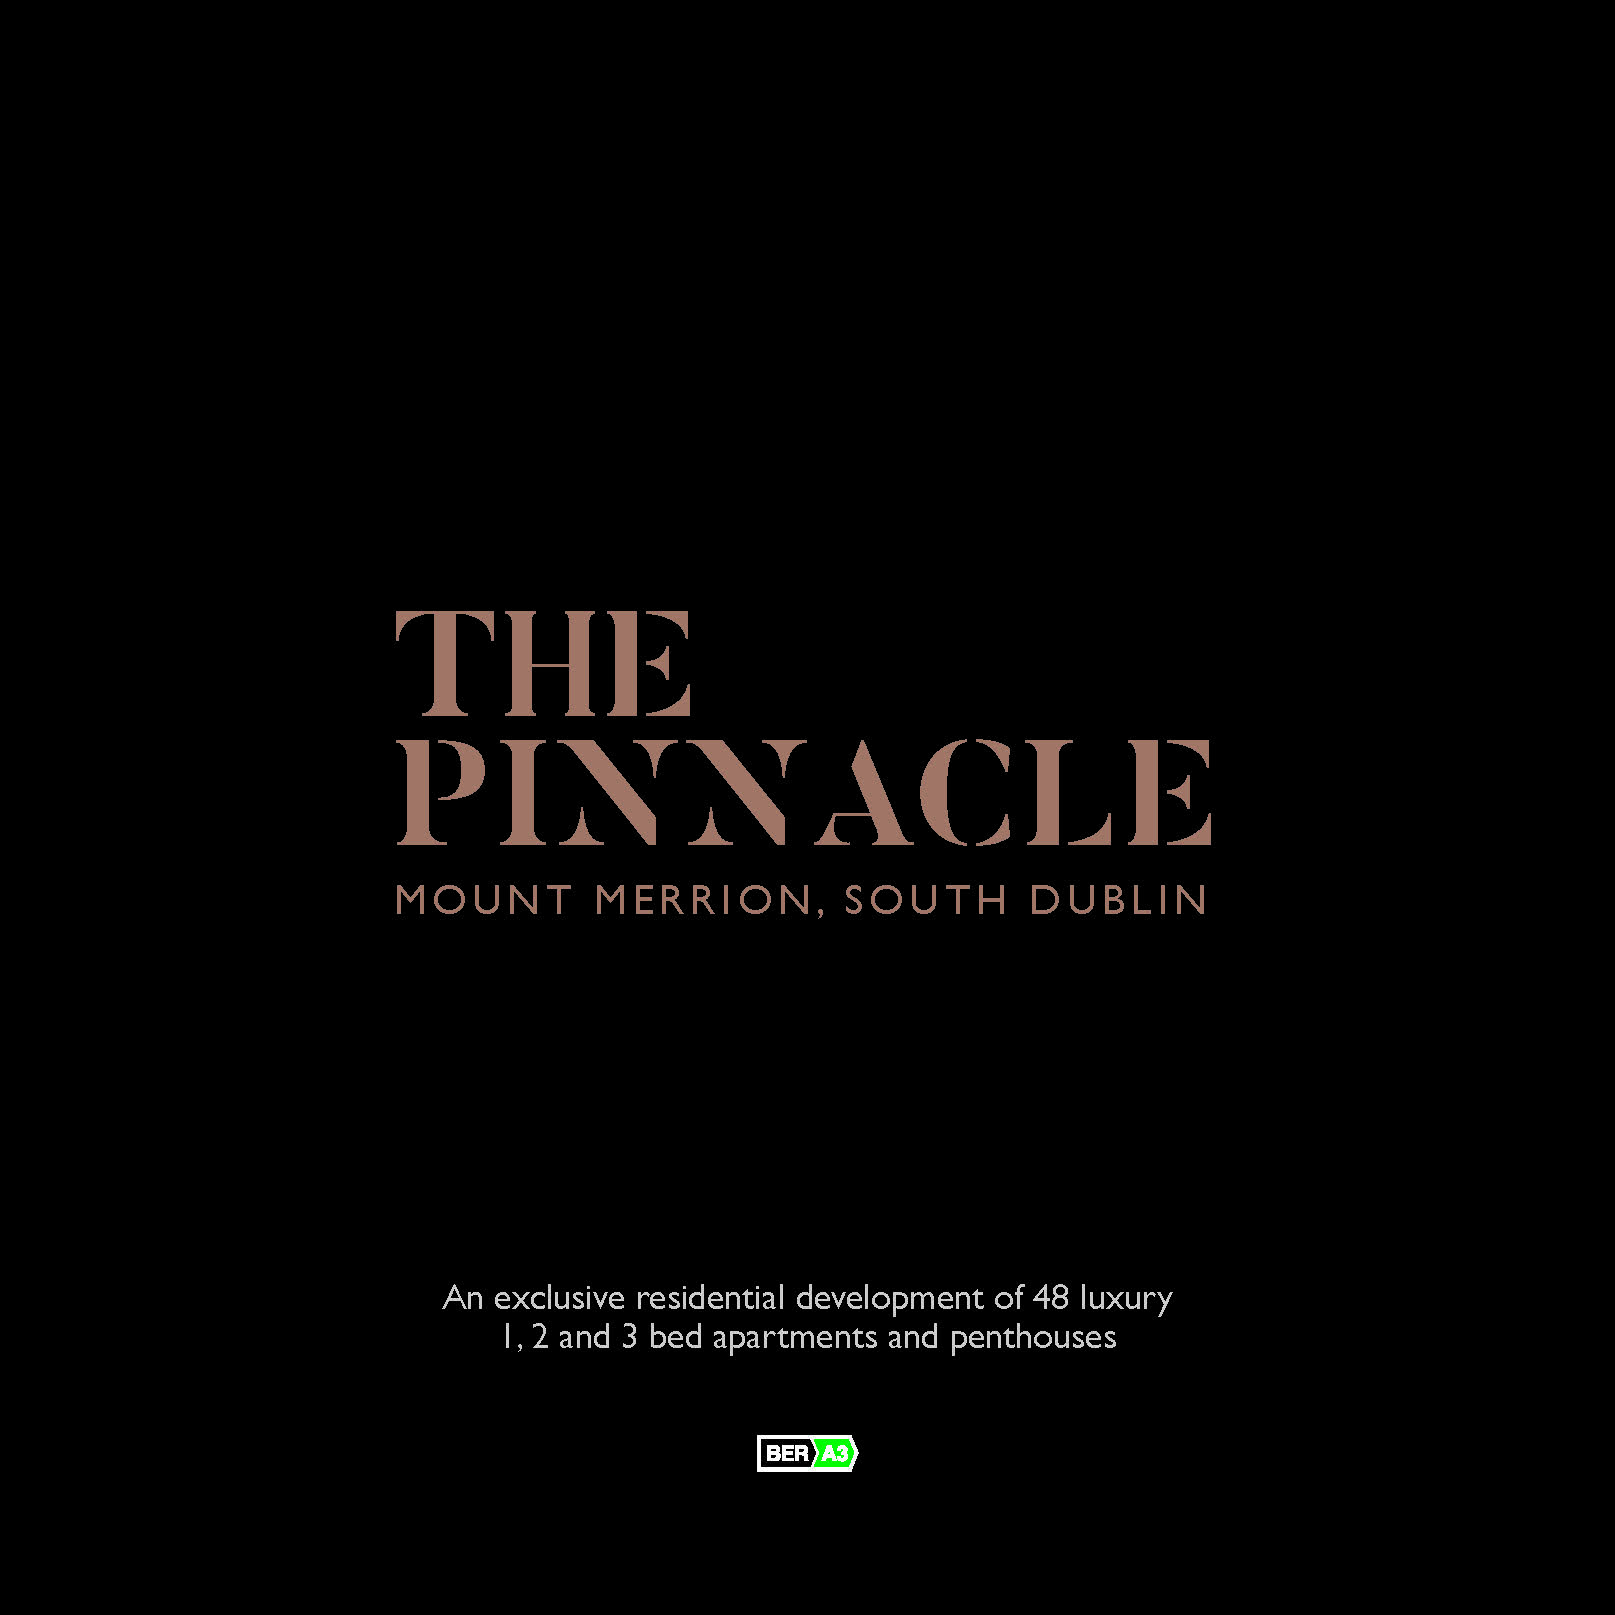 Pages from The Pinnacle Brochure